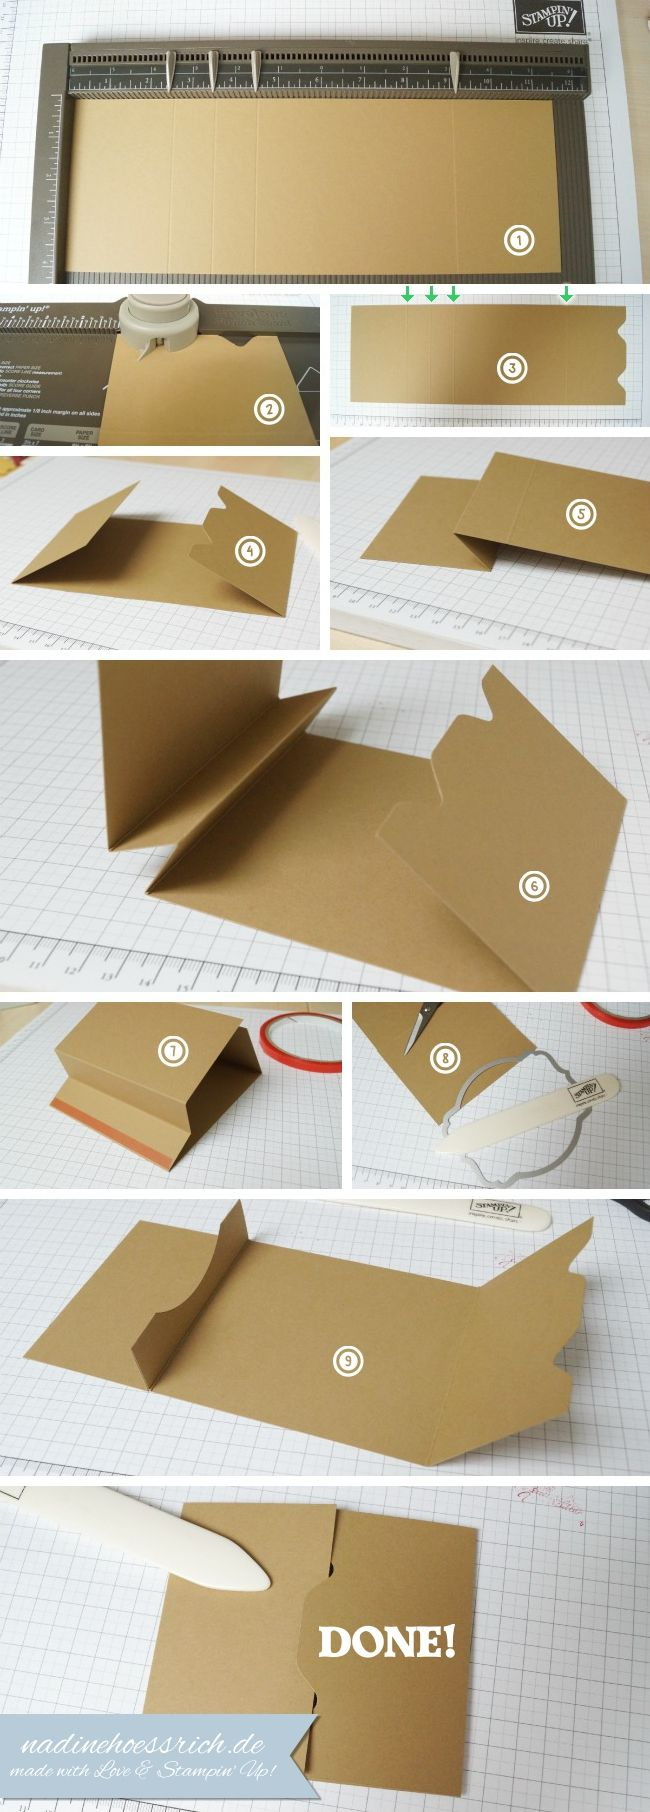 What a great idea for the envelope punch board!